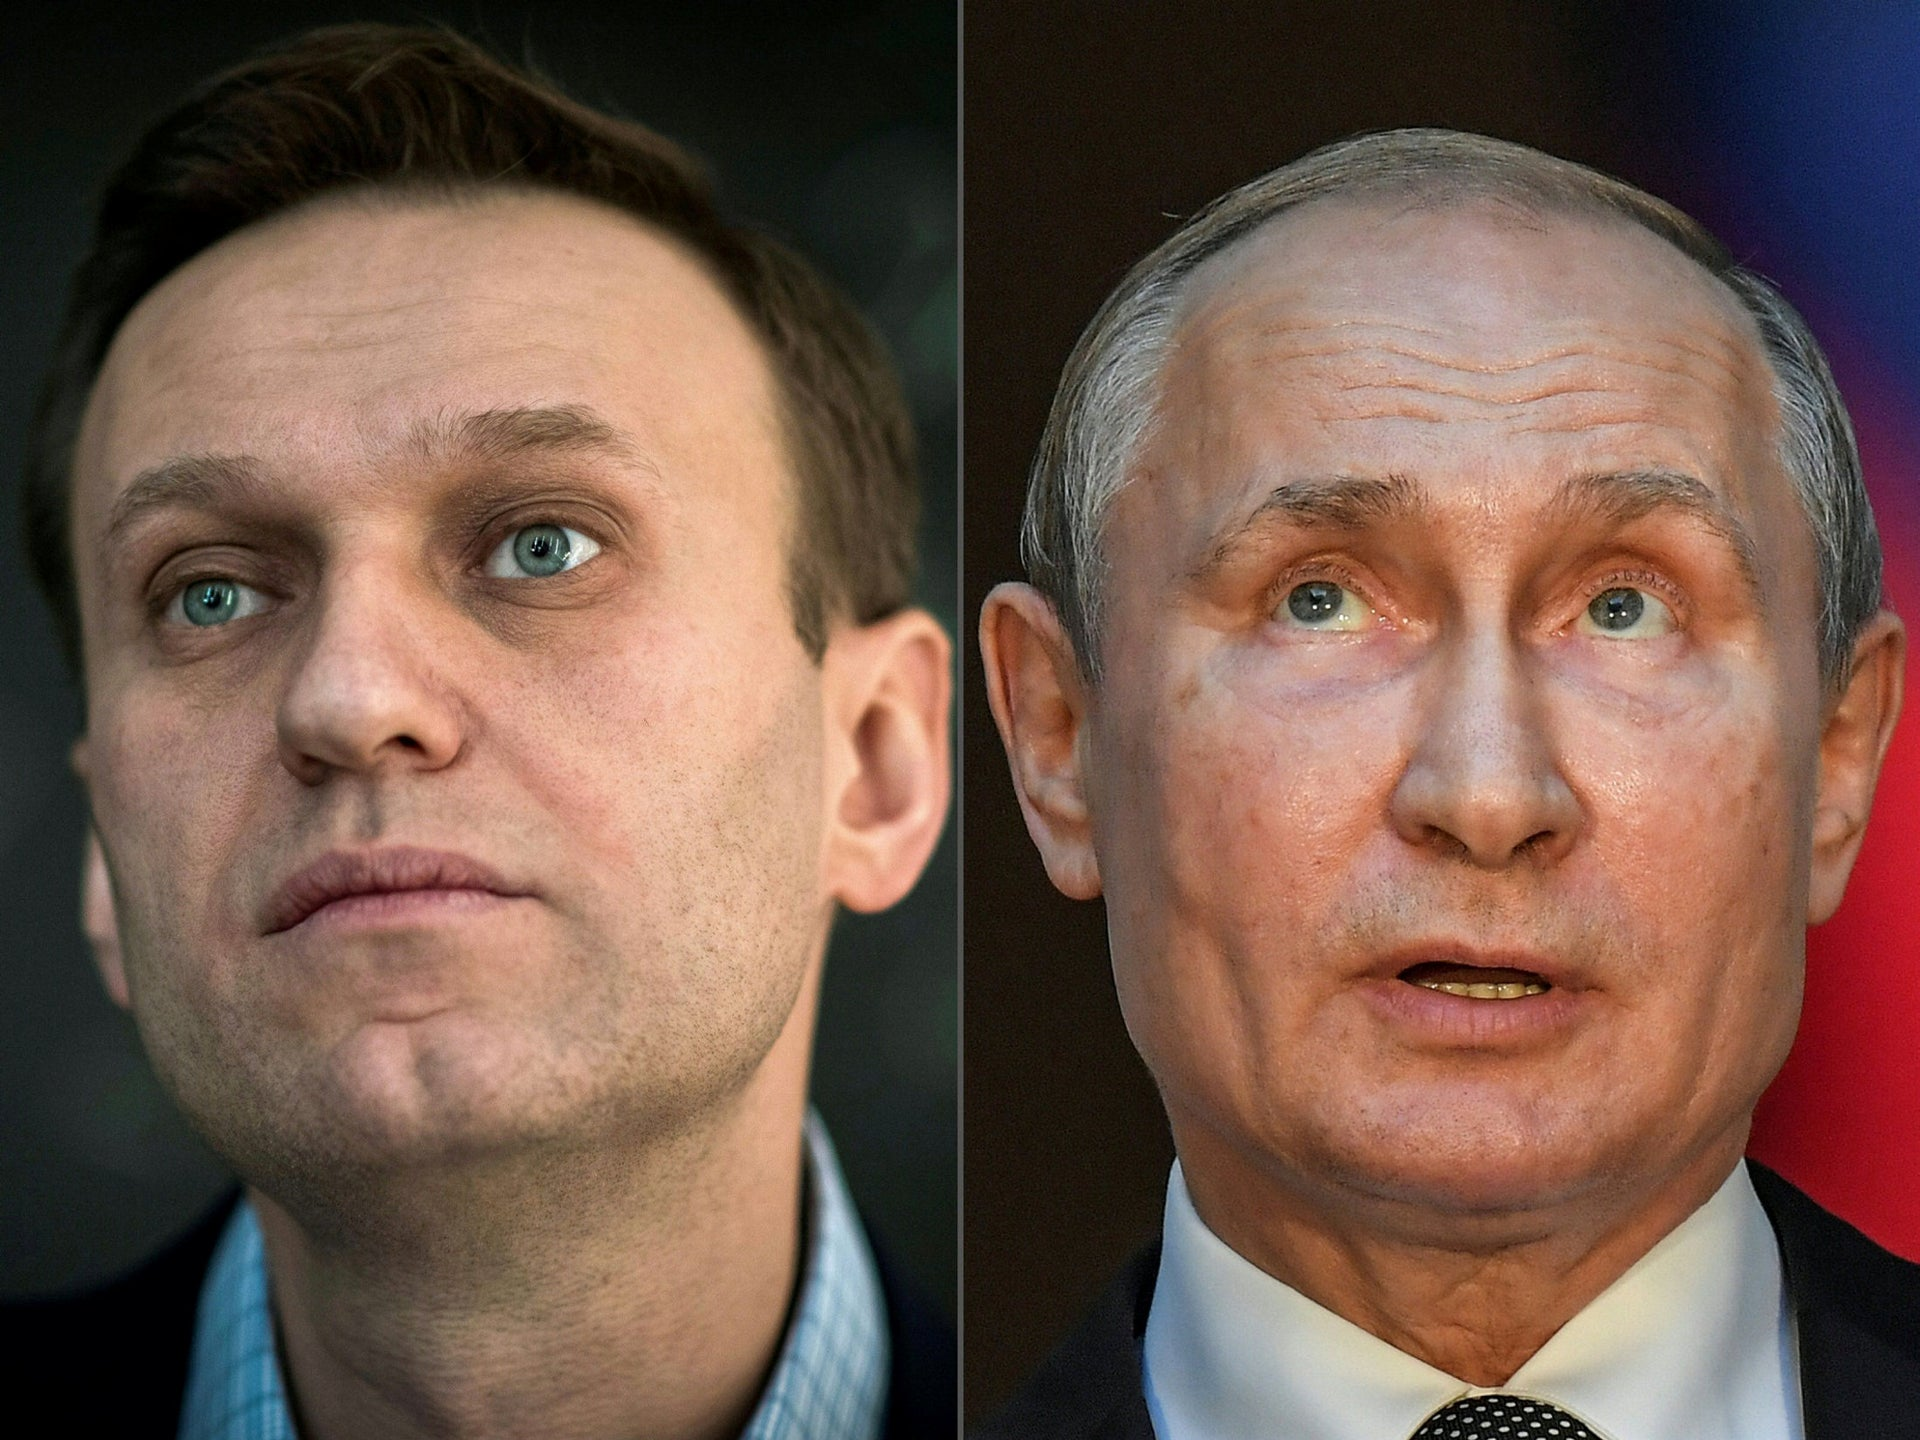 Russian opposition leader Alexei Navalny, left on January 16, 2018 in Moscow, and Russian President Vladimir Putin, on July 4, 2019 in Rome.